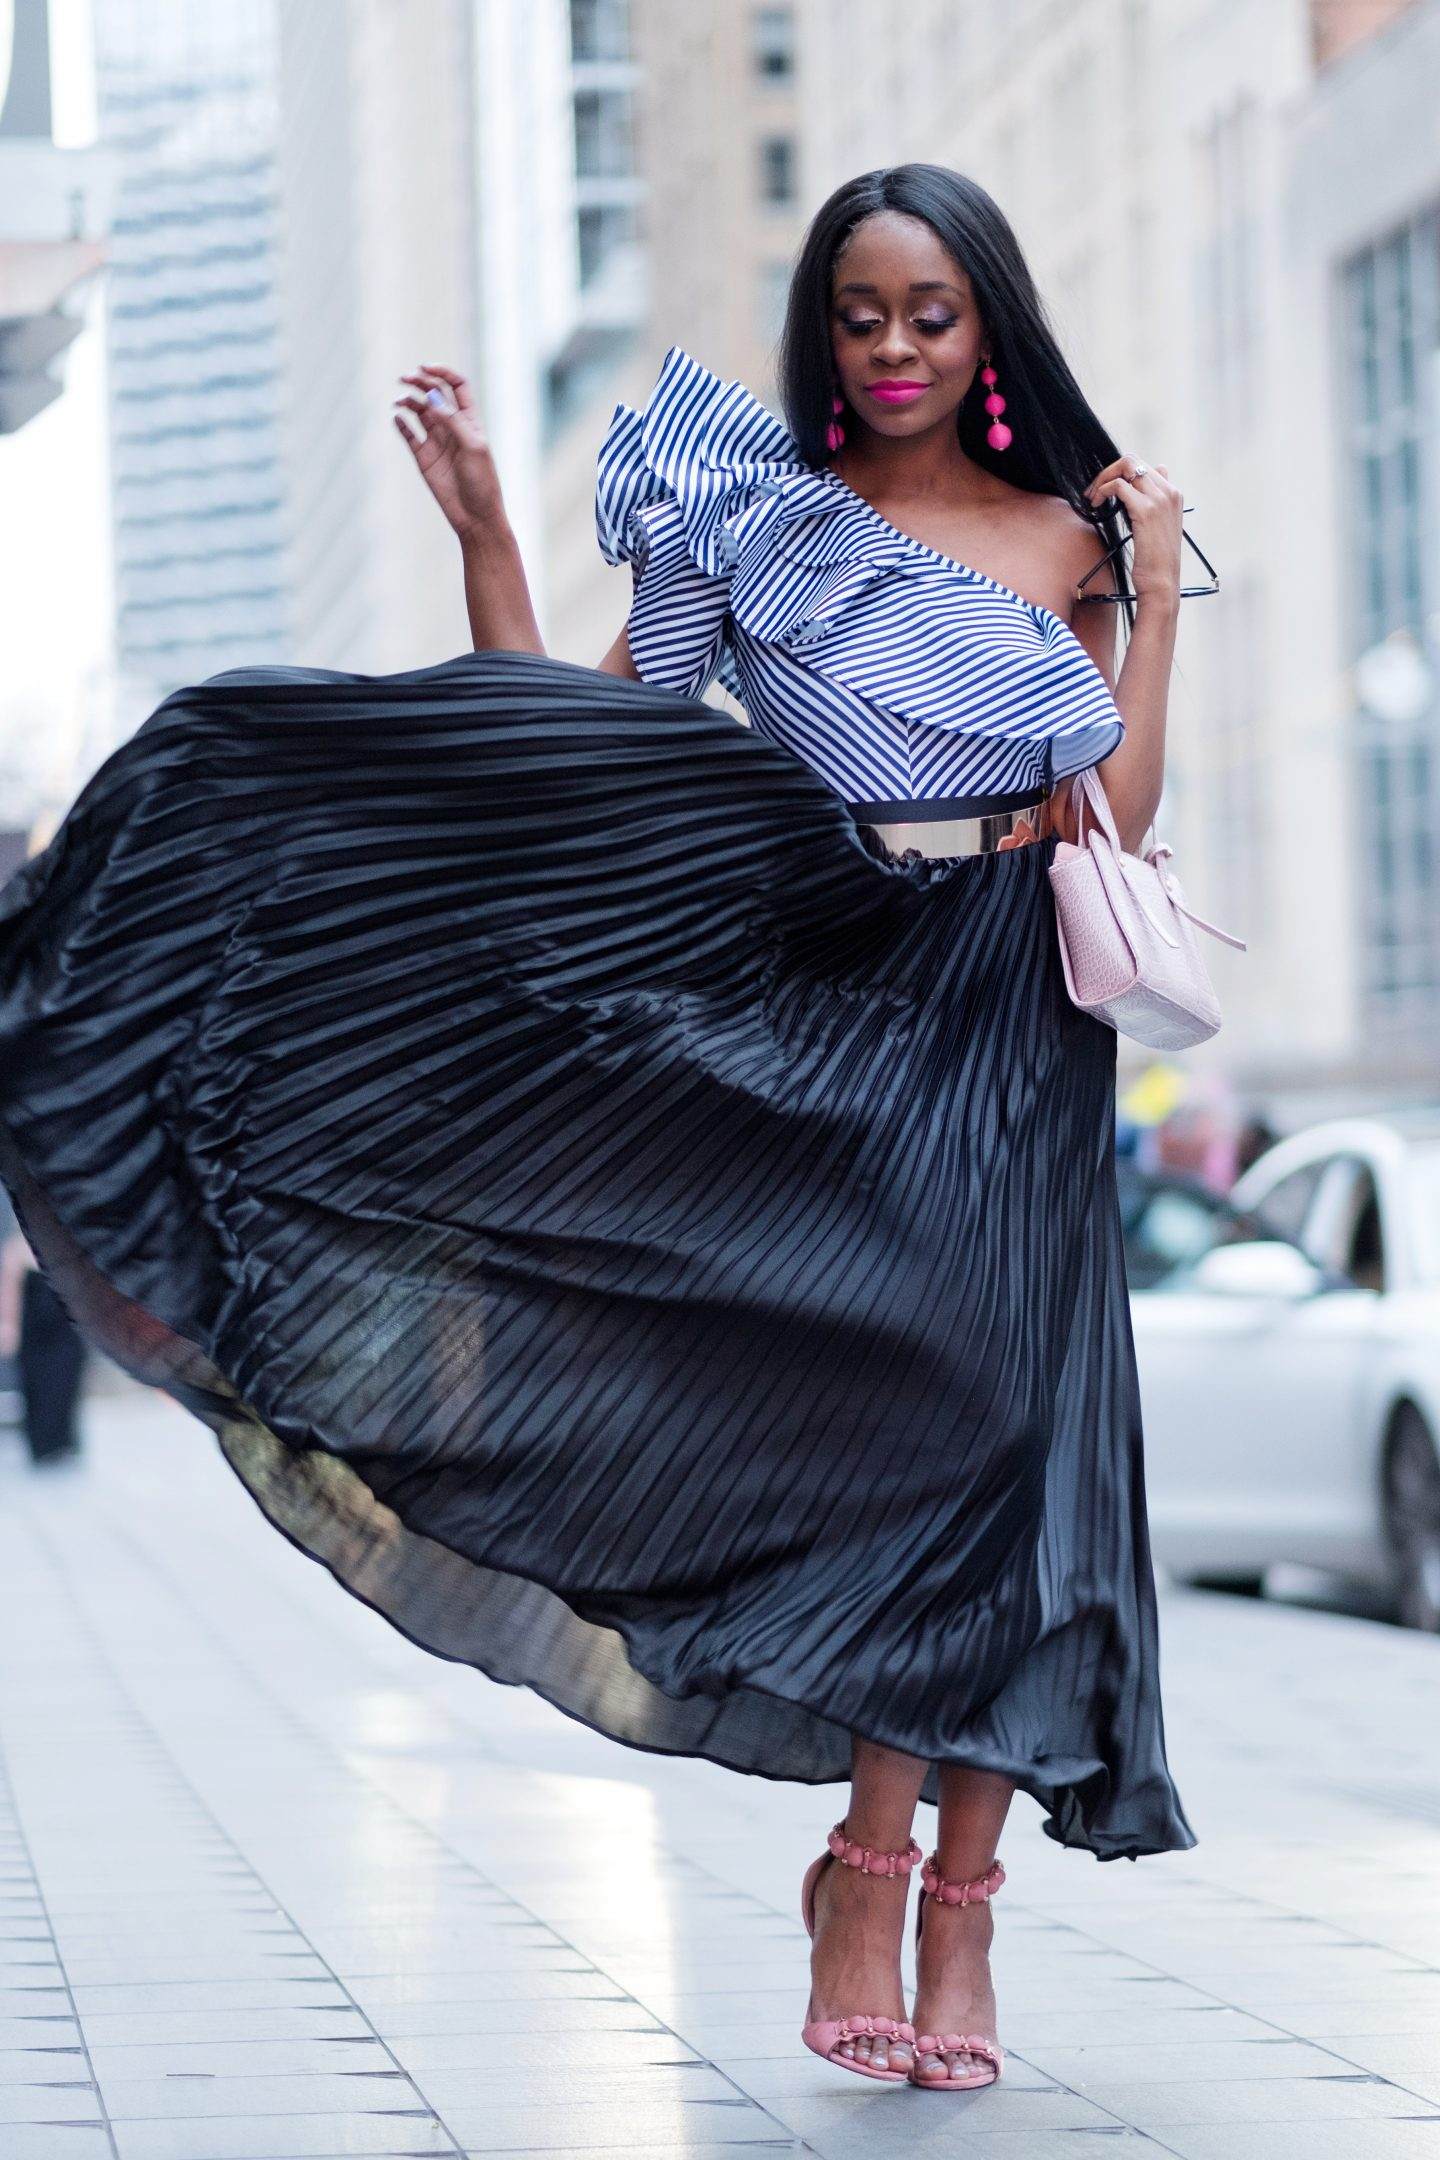 Spring wardrobe - How to Transition Your Winter Wardrobe to Spring by popular Dallas fashion blogger Foreign Fresh & Fierce